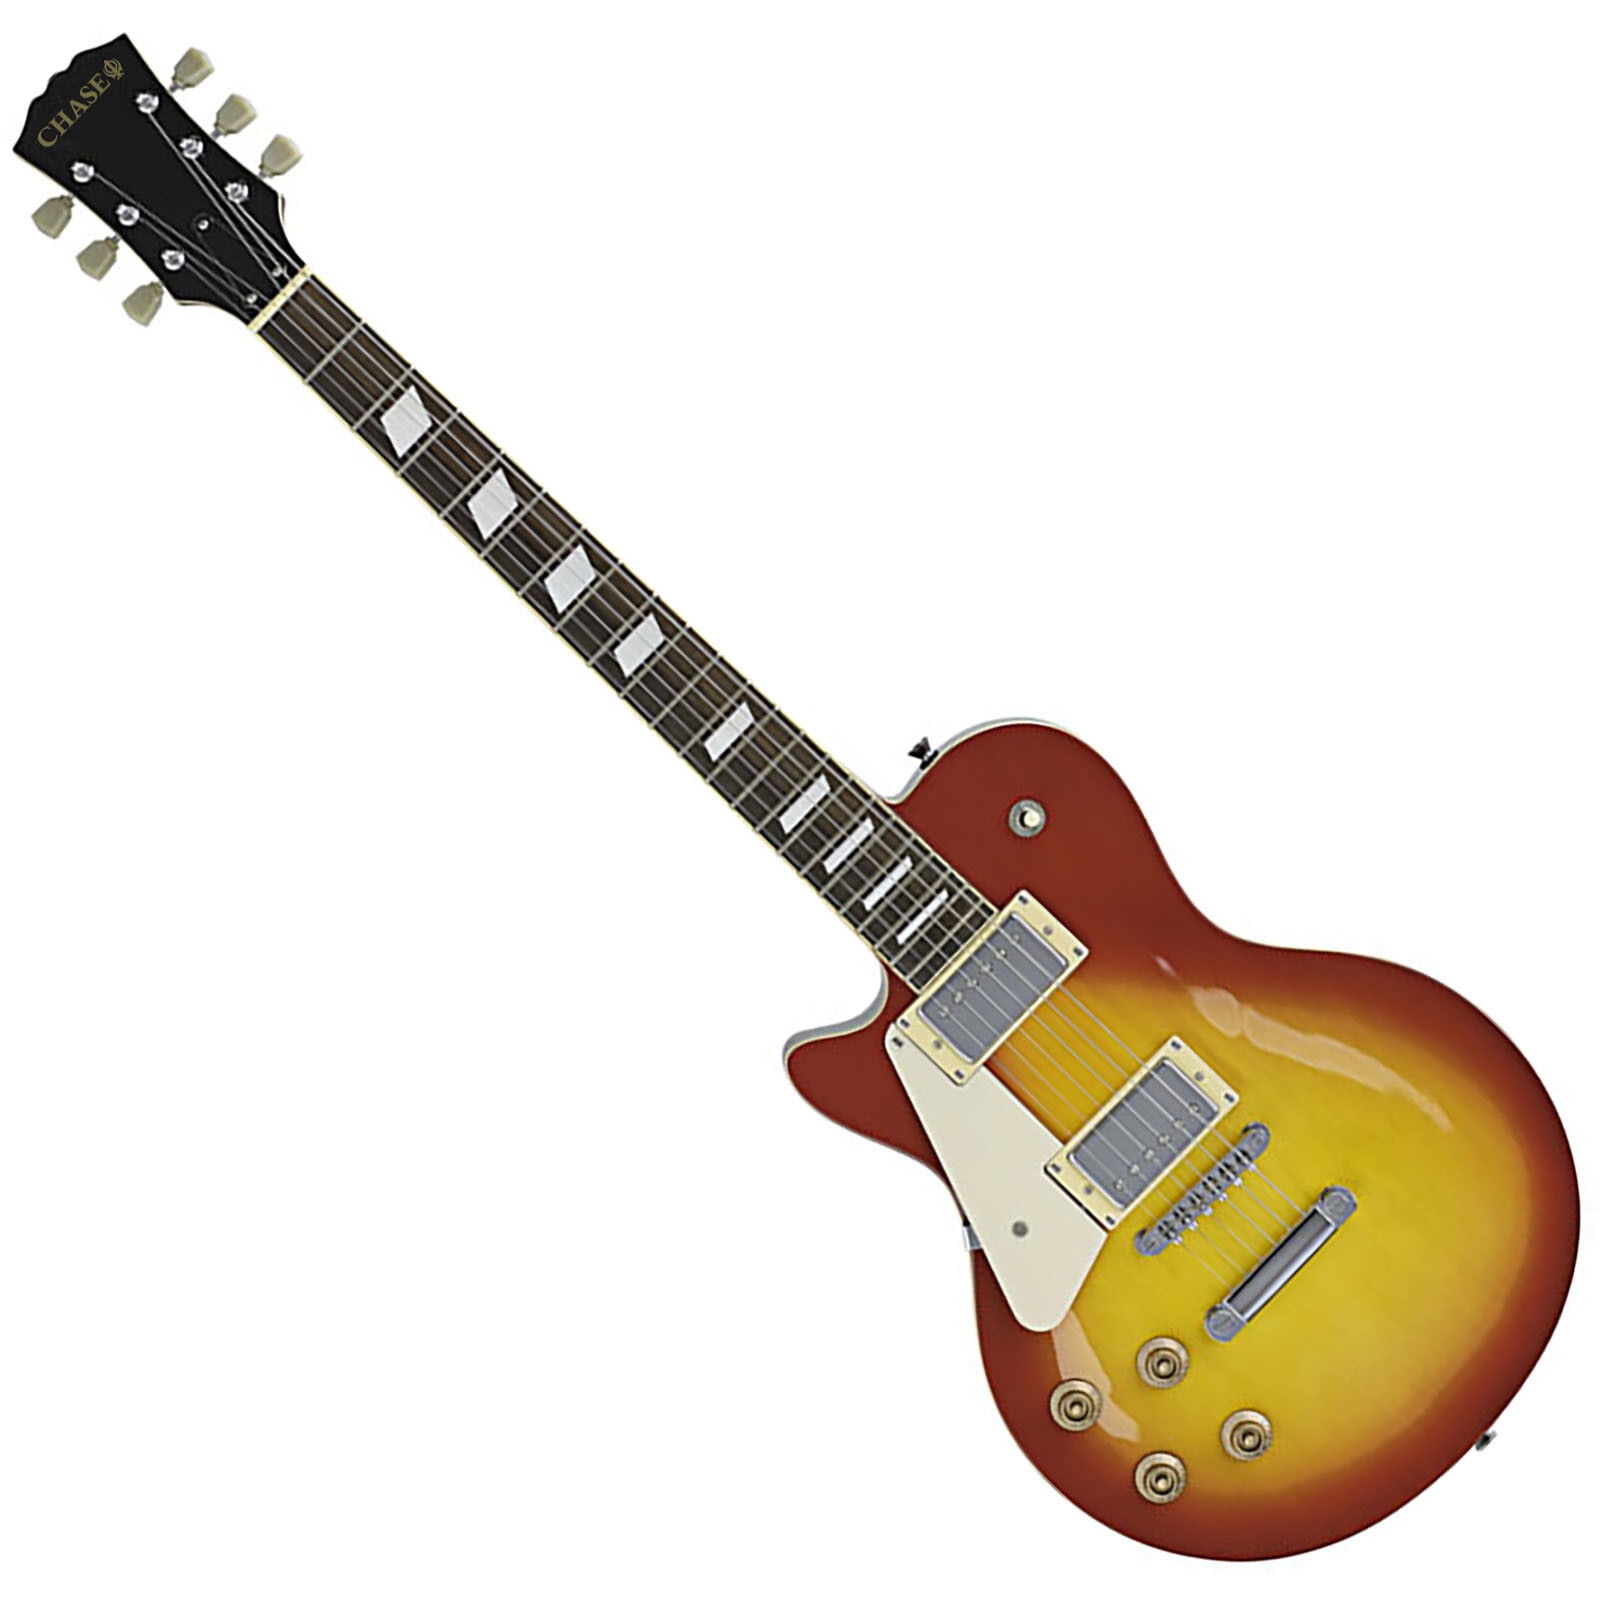 Chase Les Paul Electric Guitar L320LH-CS Left Handed In Cherryburst Finish c